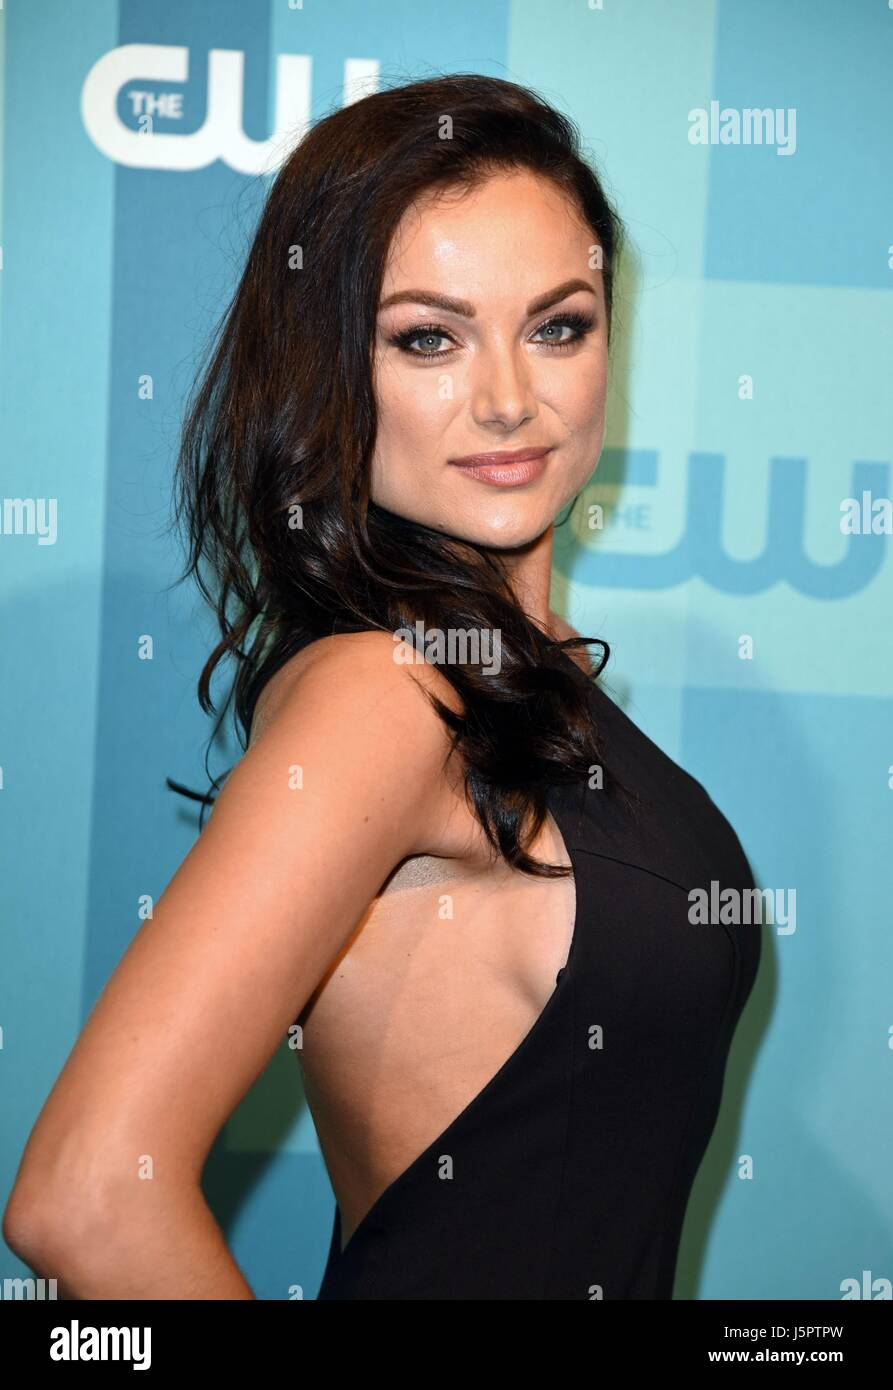 Christina Ochoa nude (12 fotos) Hot, Instagram, bra